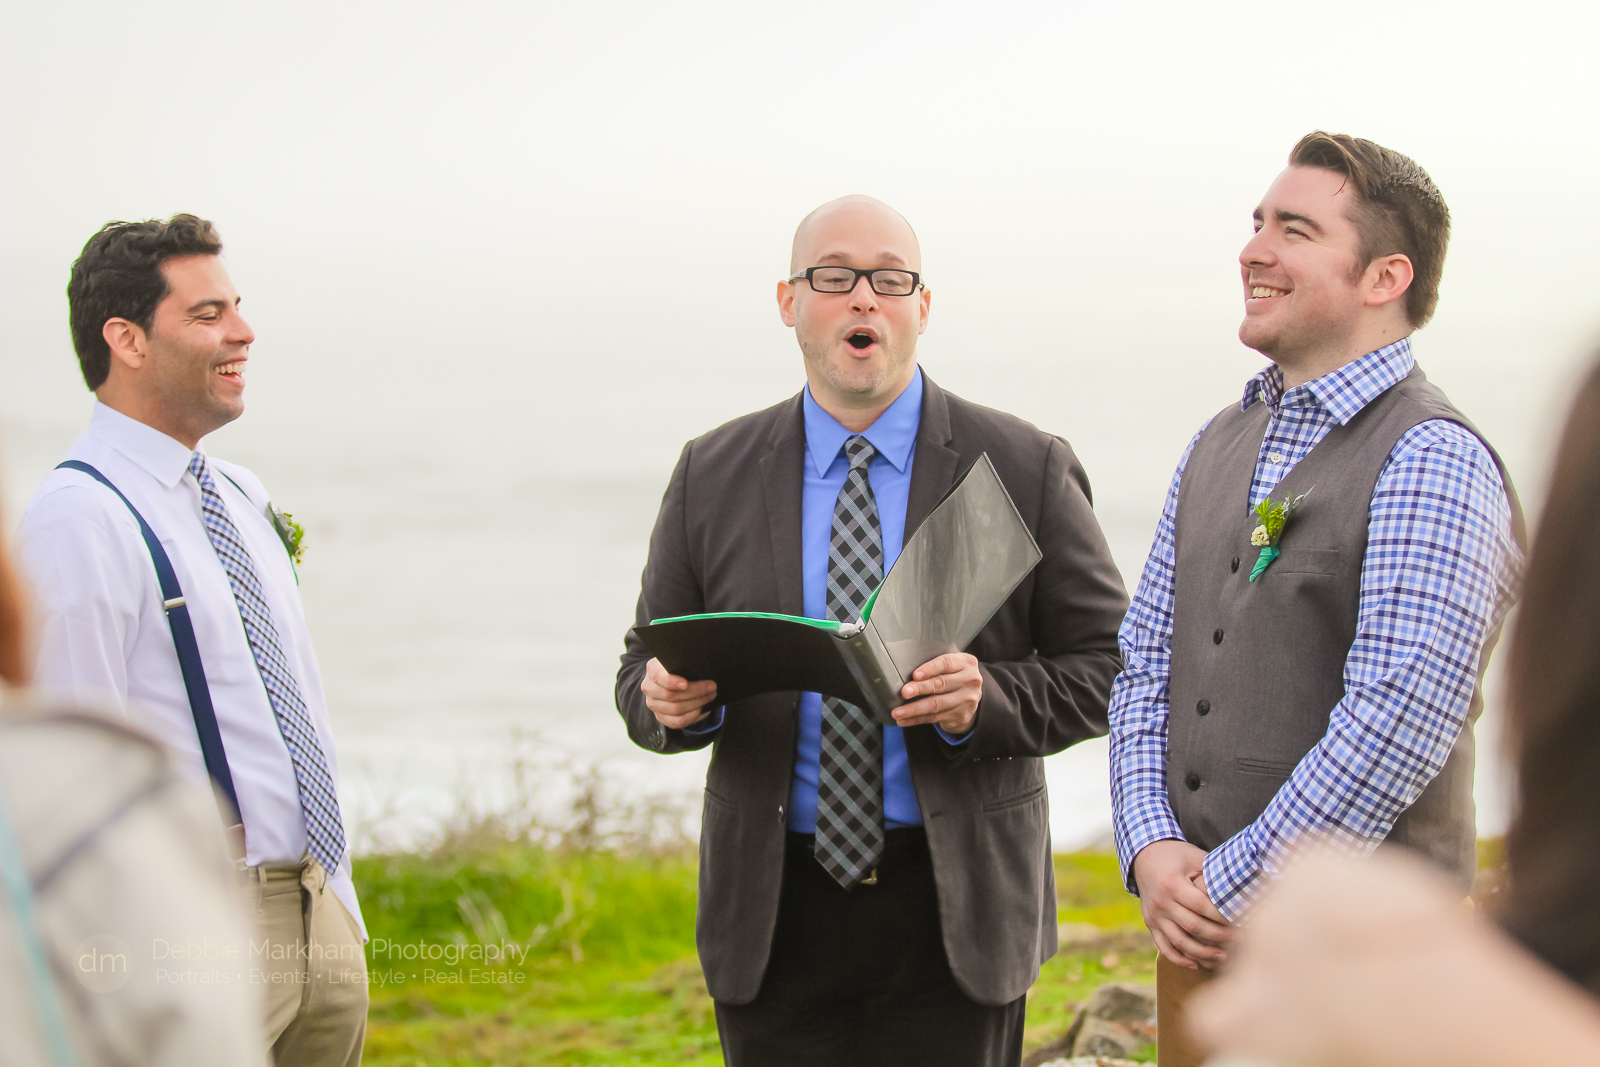 A+R_Gay Wedding_Portraits_Married_Cambria_Robin's_California_Coast__Photographer-19